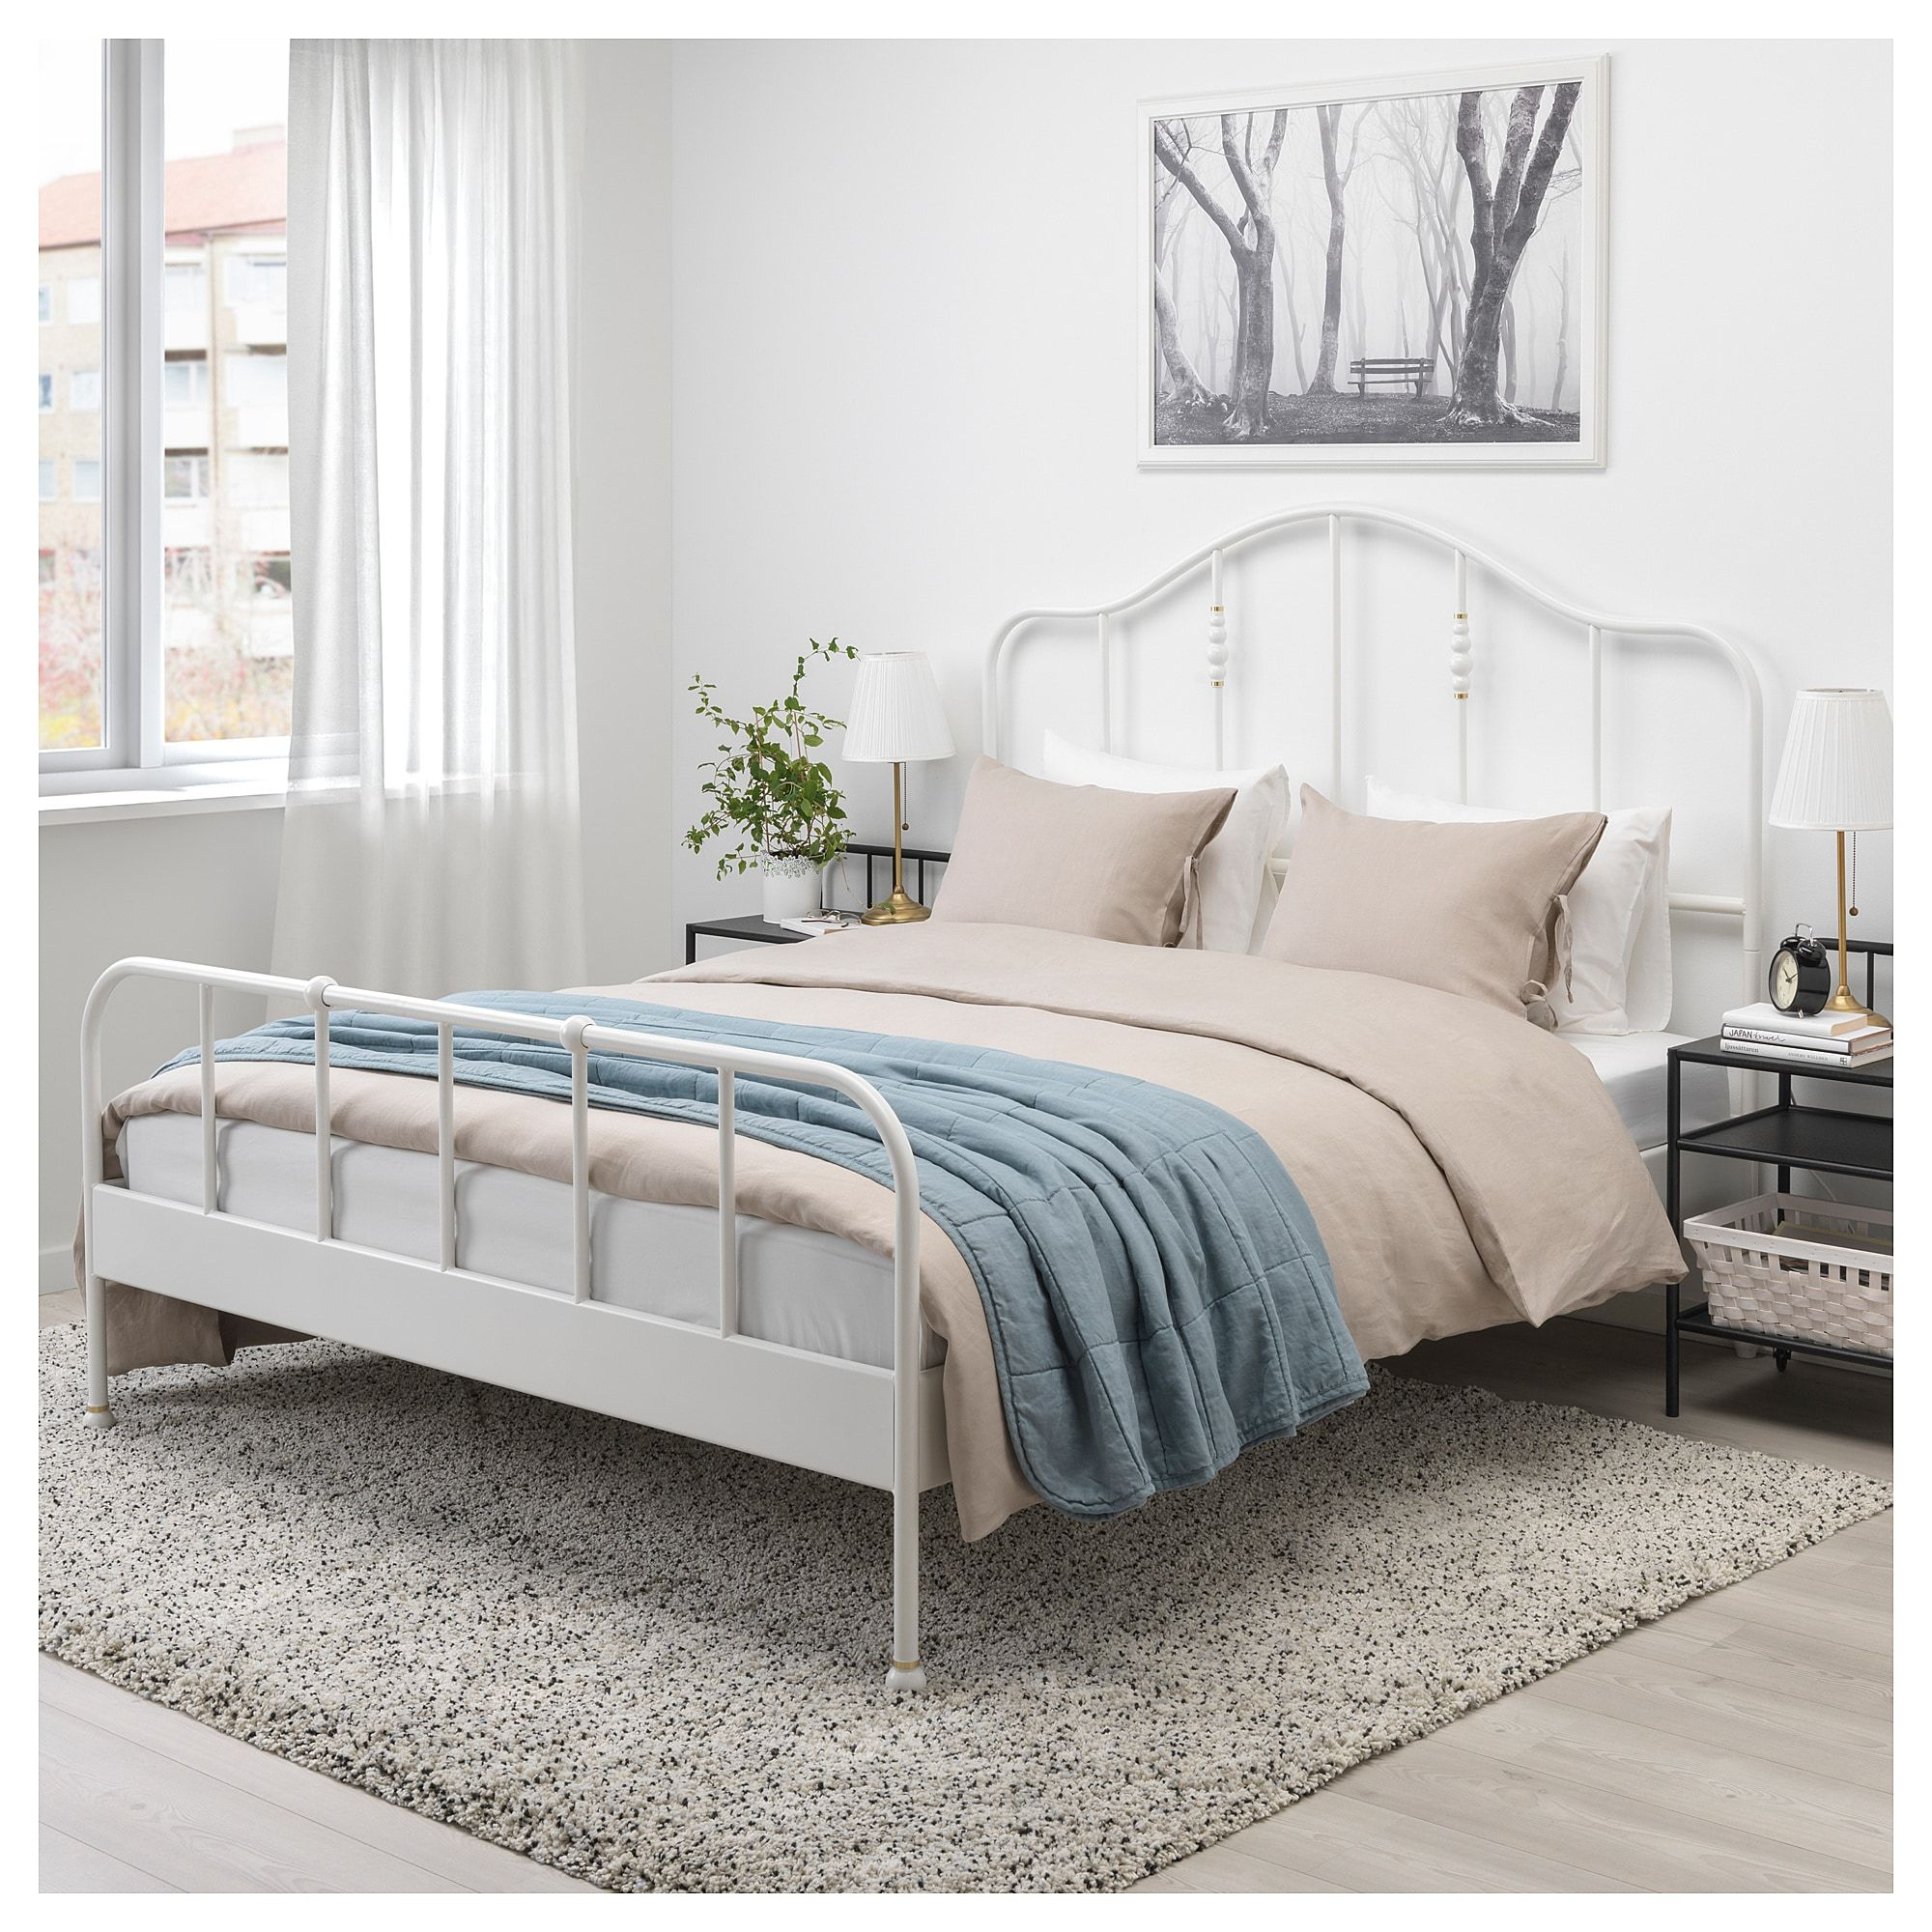 Sagstua Bed Frame White Luroy Queen With Images Bed Frame